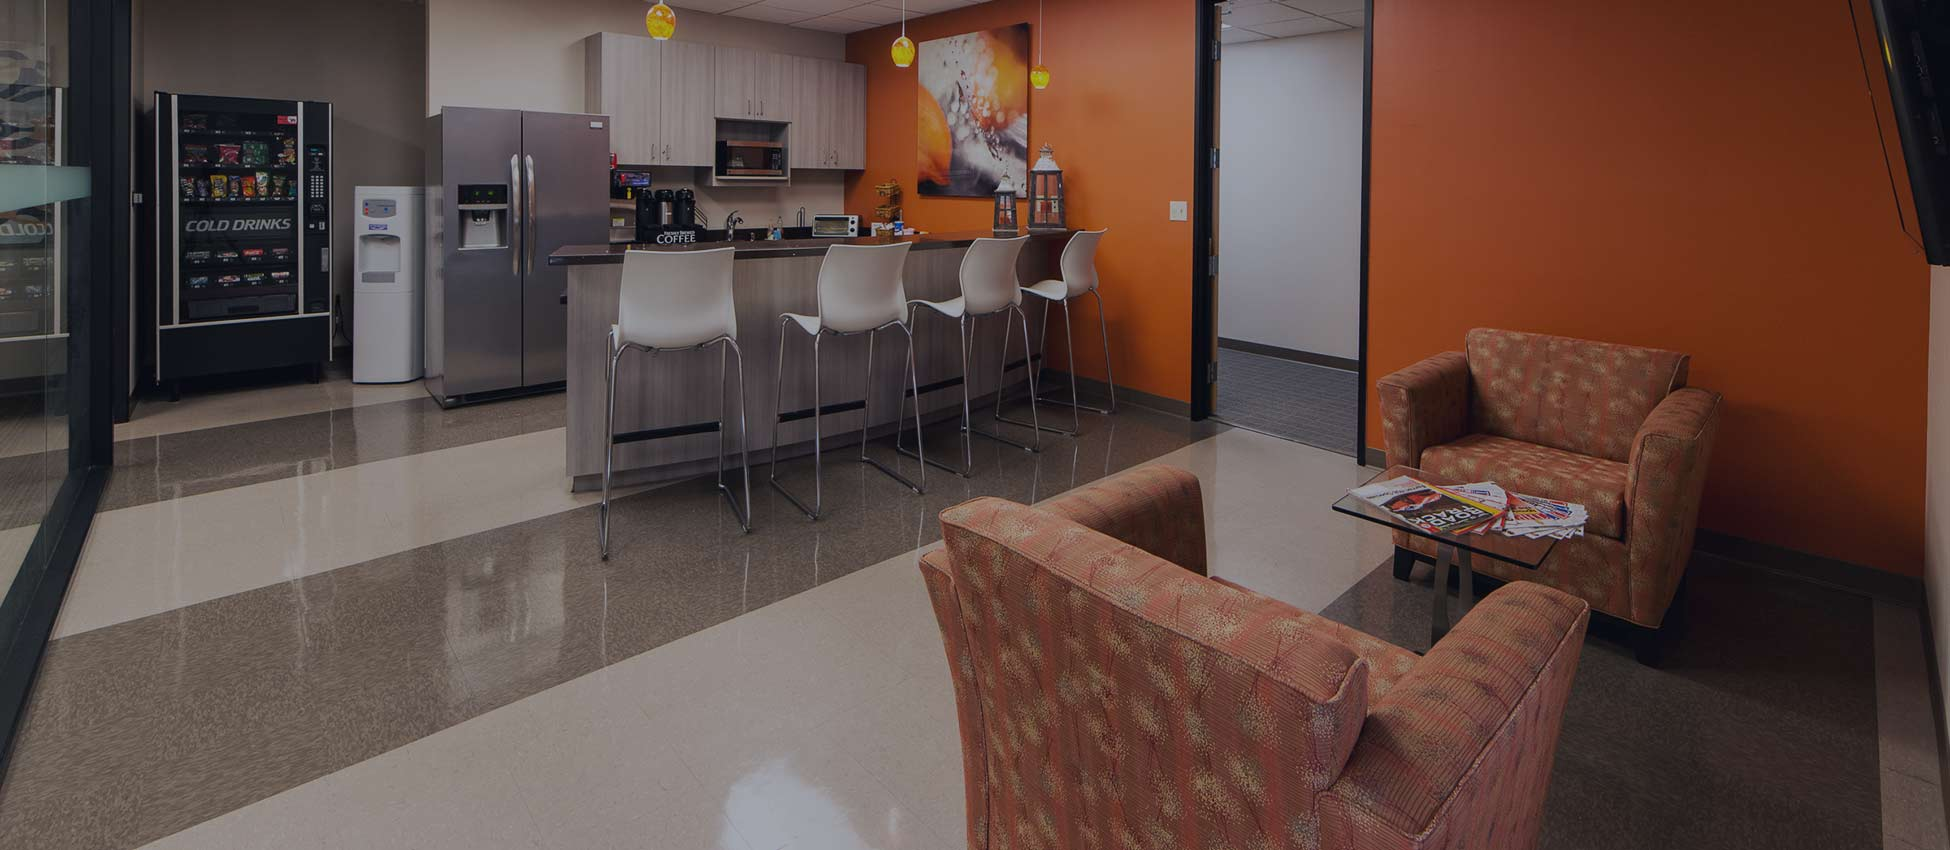 pacific-workplaces-pleasant-hill-office-space-coworking